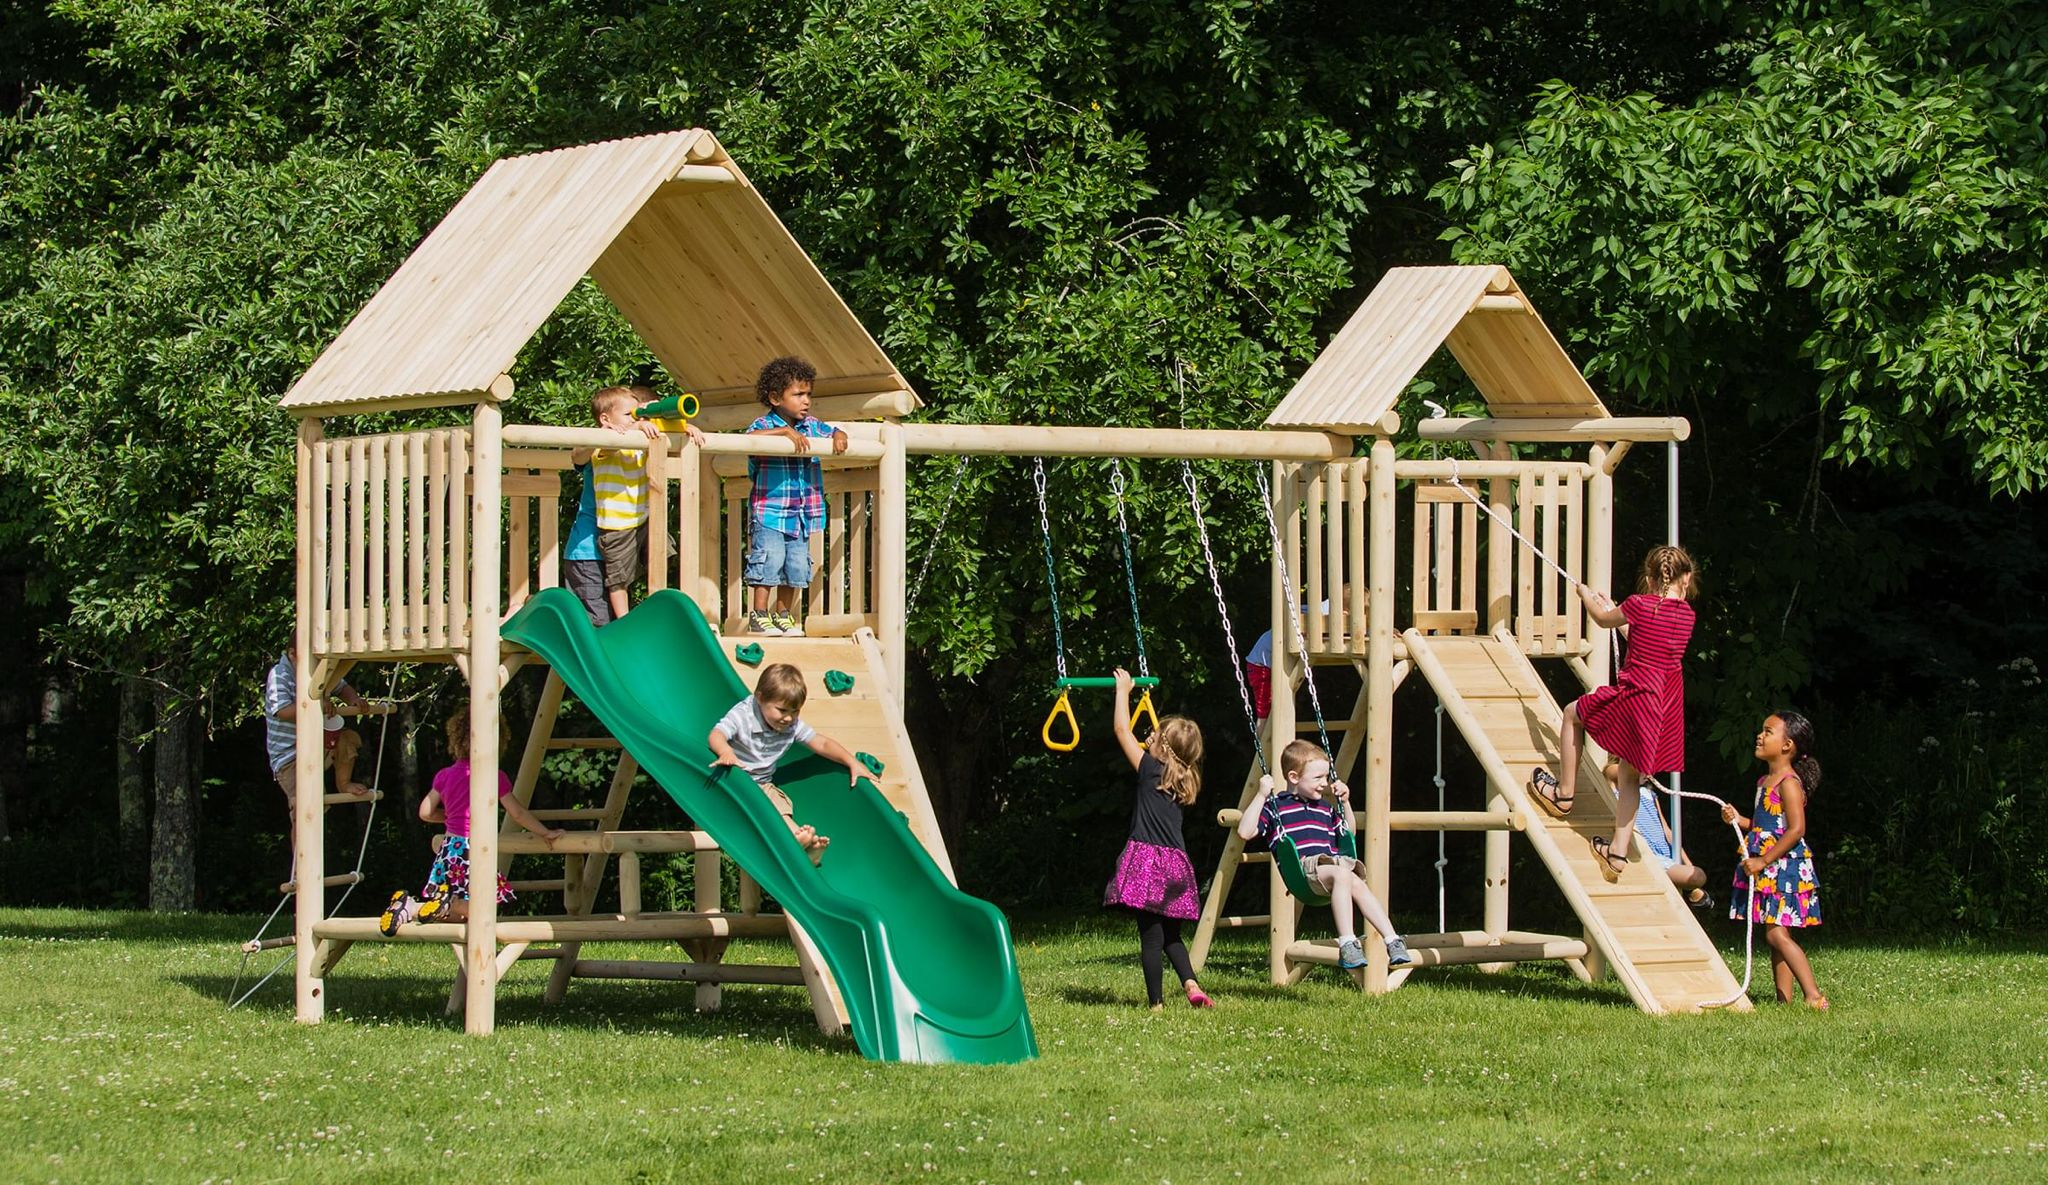 play a round lookout cedar playset is splinter free chemical free